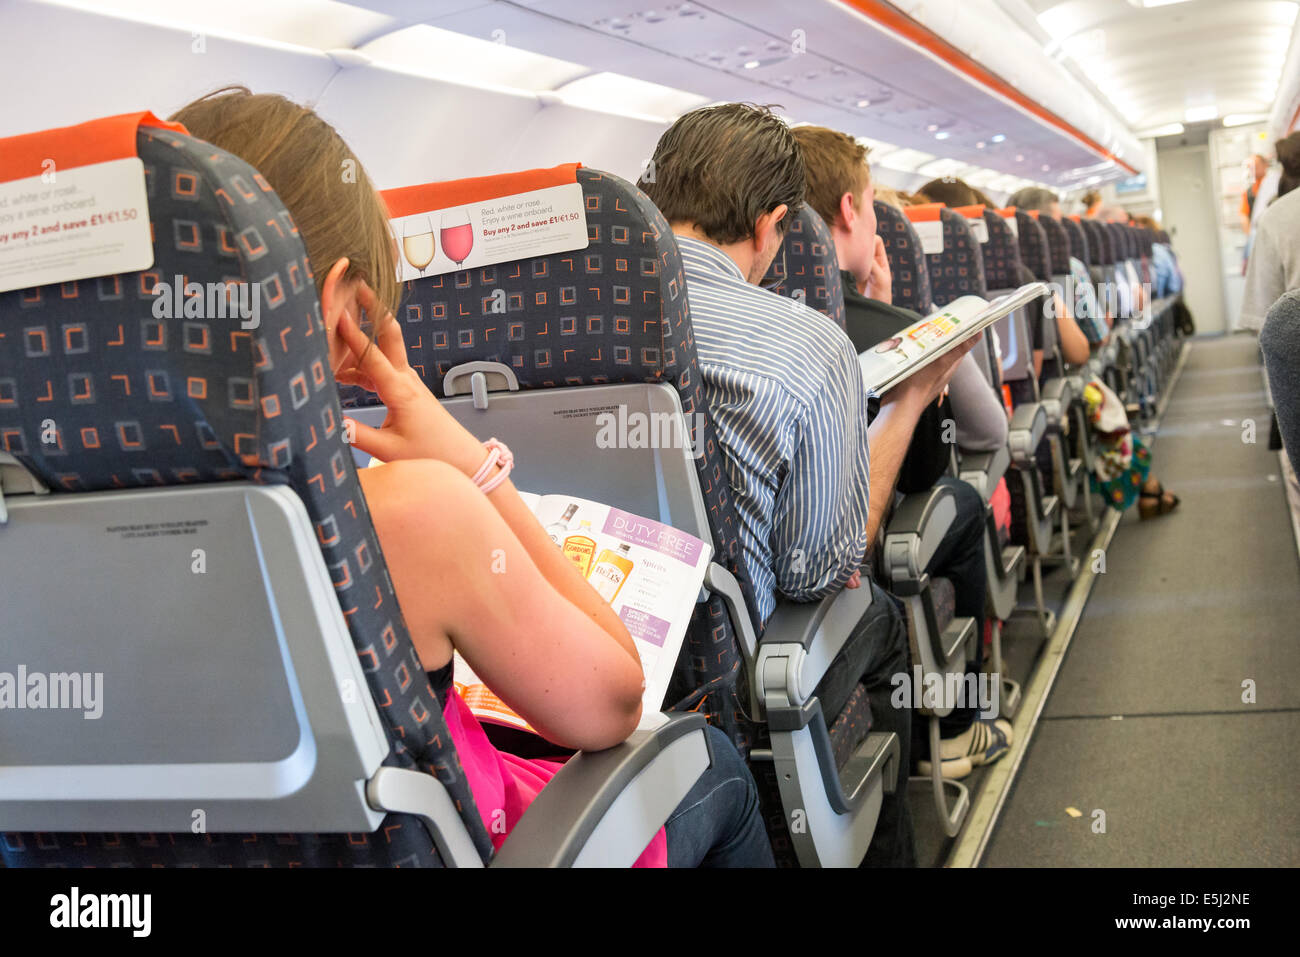 Easyjet passengers reading the inflight magazine duty free offers - Stock Image